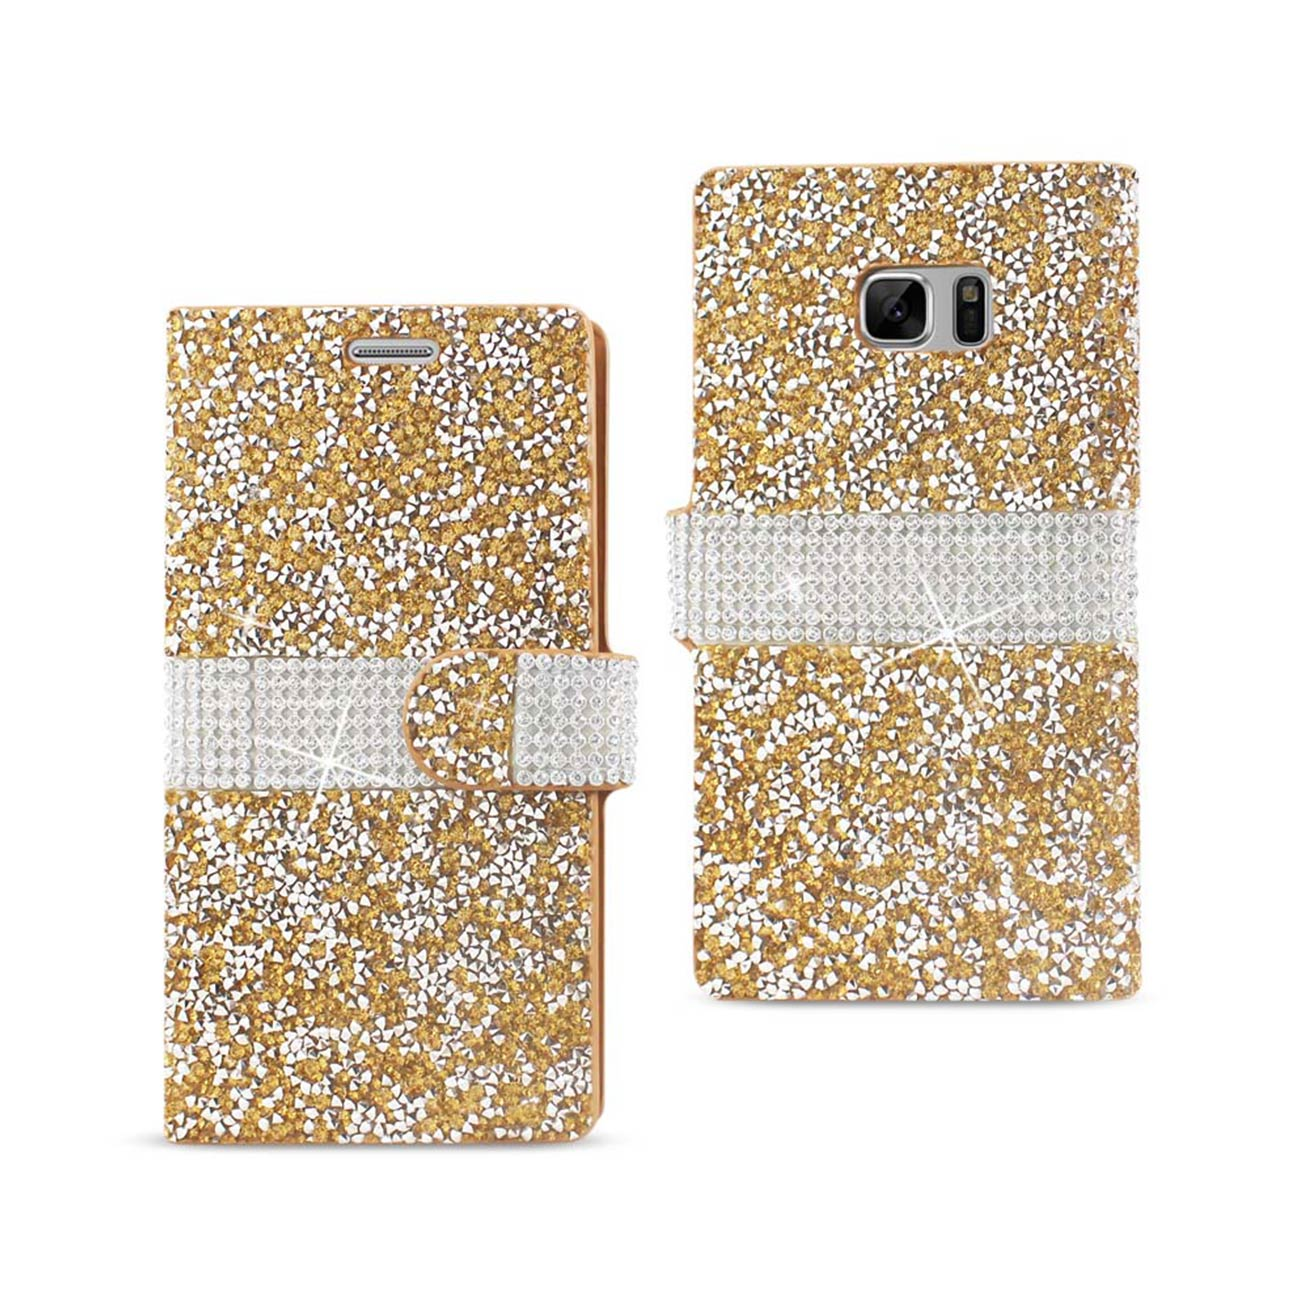 samsung galaxy note 7 jewelry wallet luxury jewelry bling diamond crystal rhinestone leather case cover